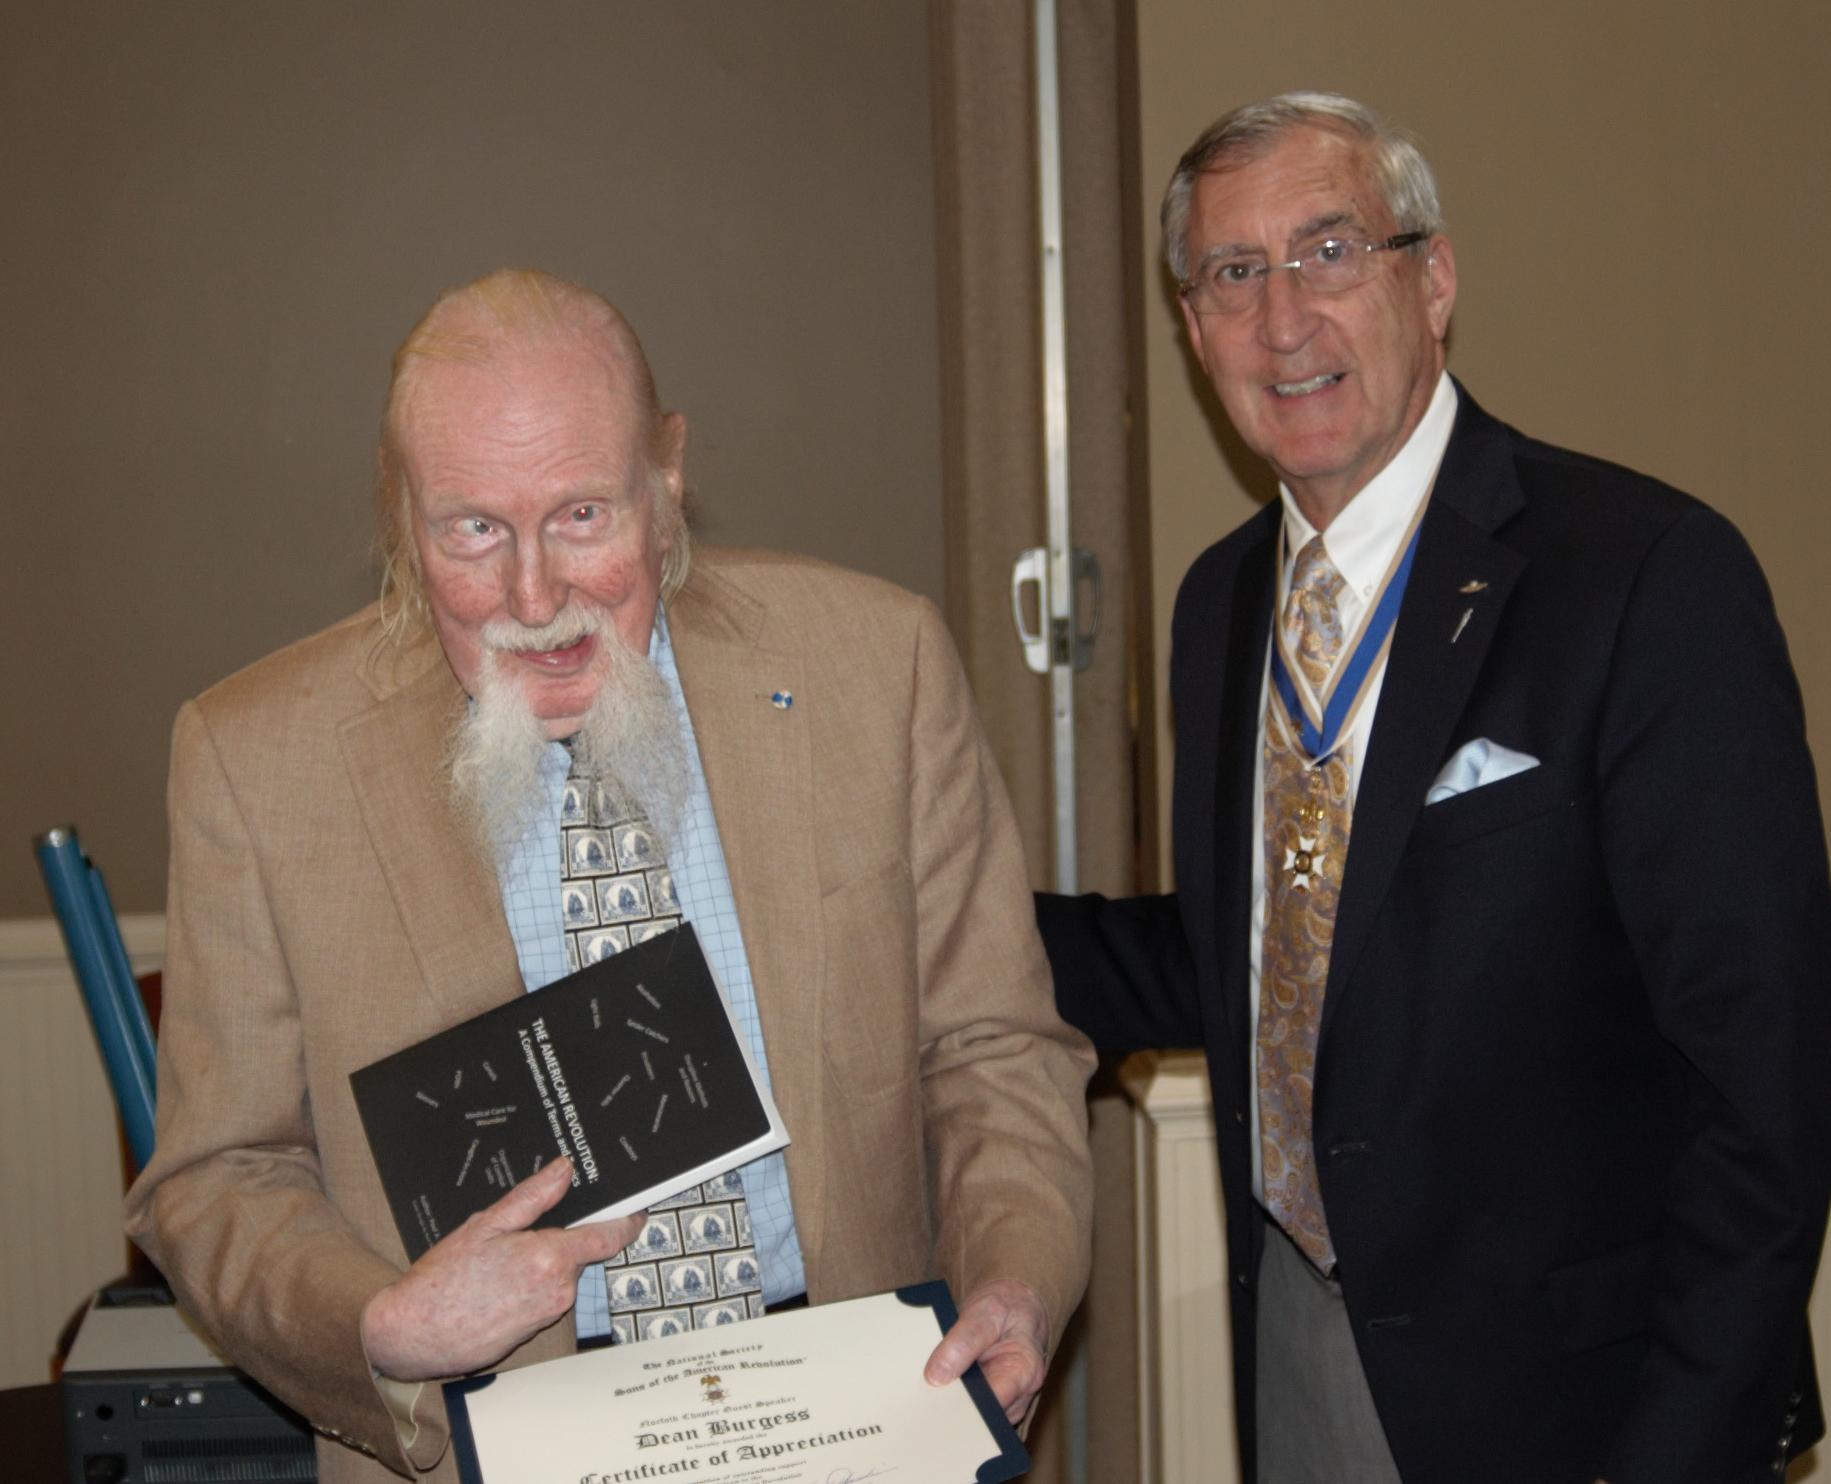 Compatriot and Guest Speaker Dean Burgess receives a book and Certificate of Appreciation from President Hawkins